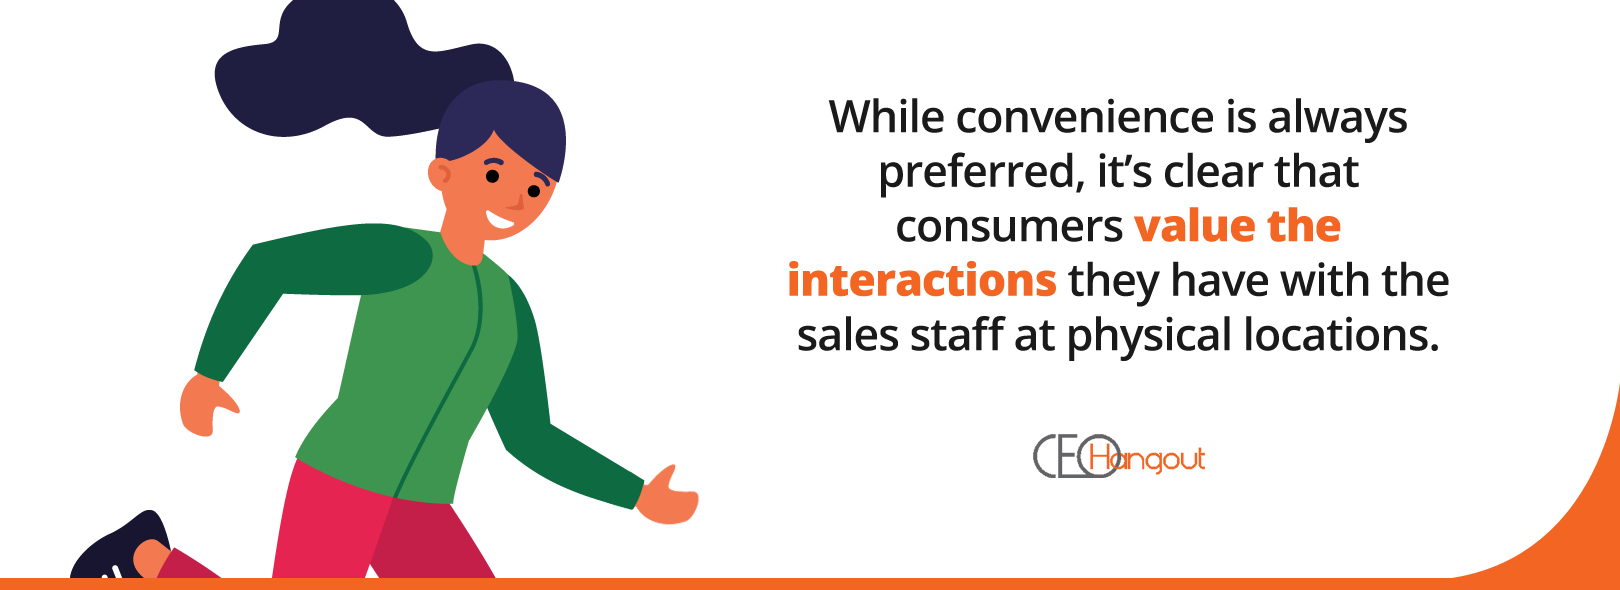 physical interactions with sales staff